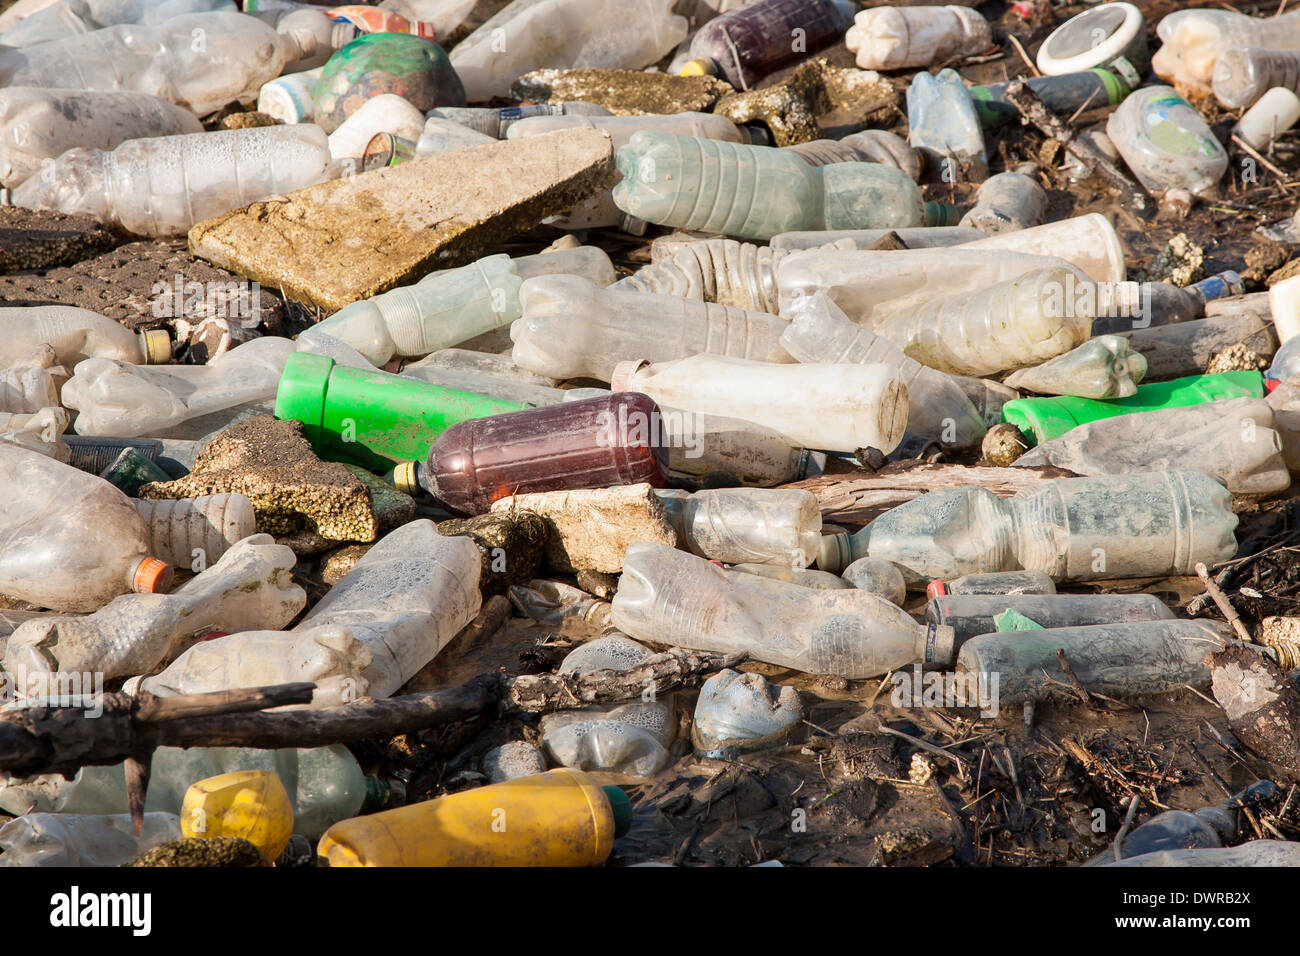 Environmental pollution. Plastic bottles on illegal dump - Stock Image